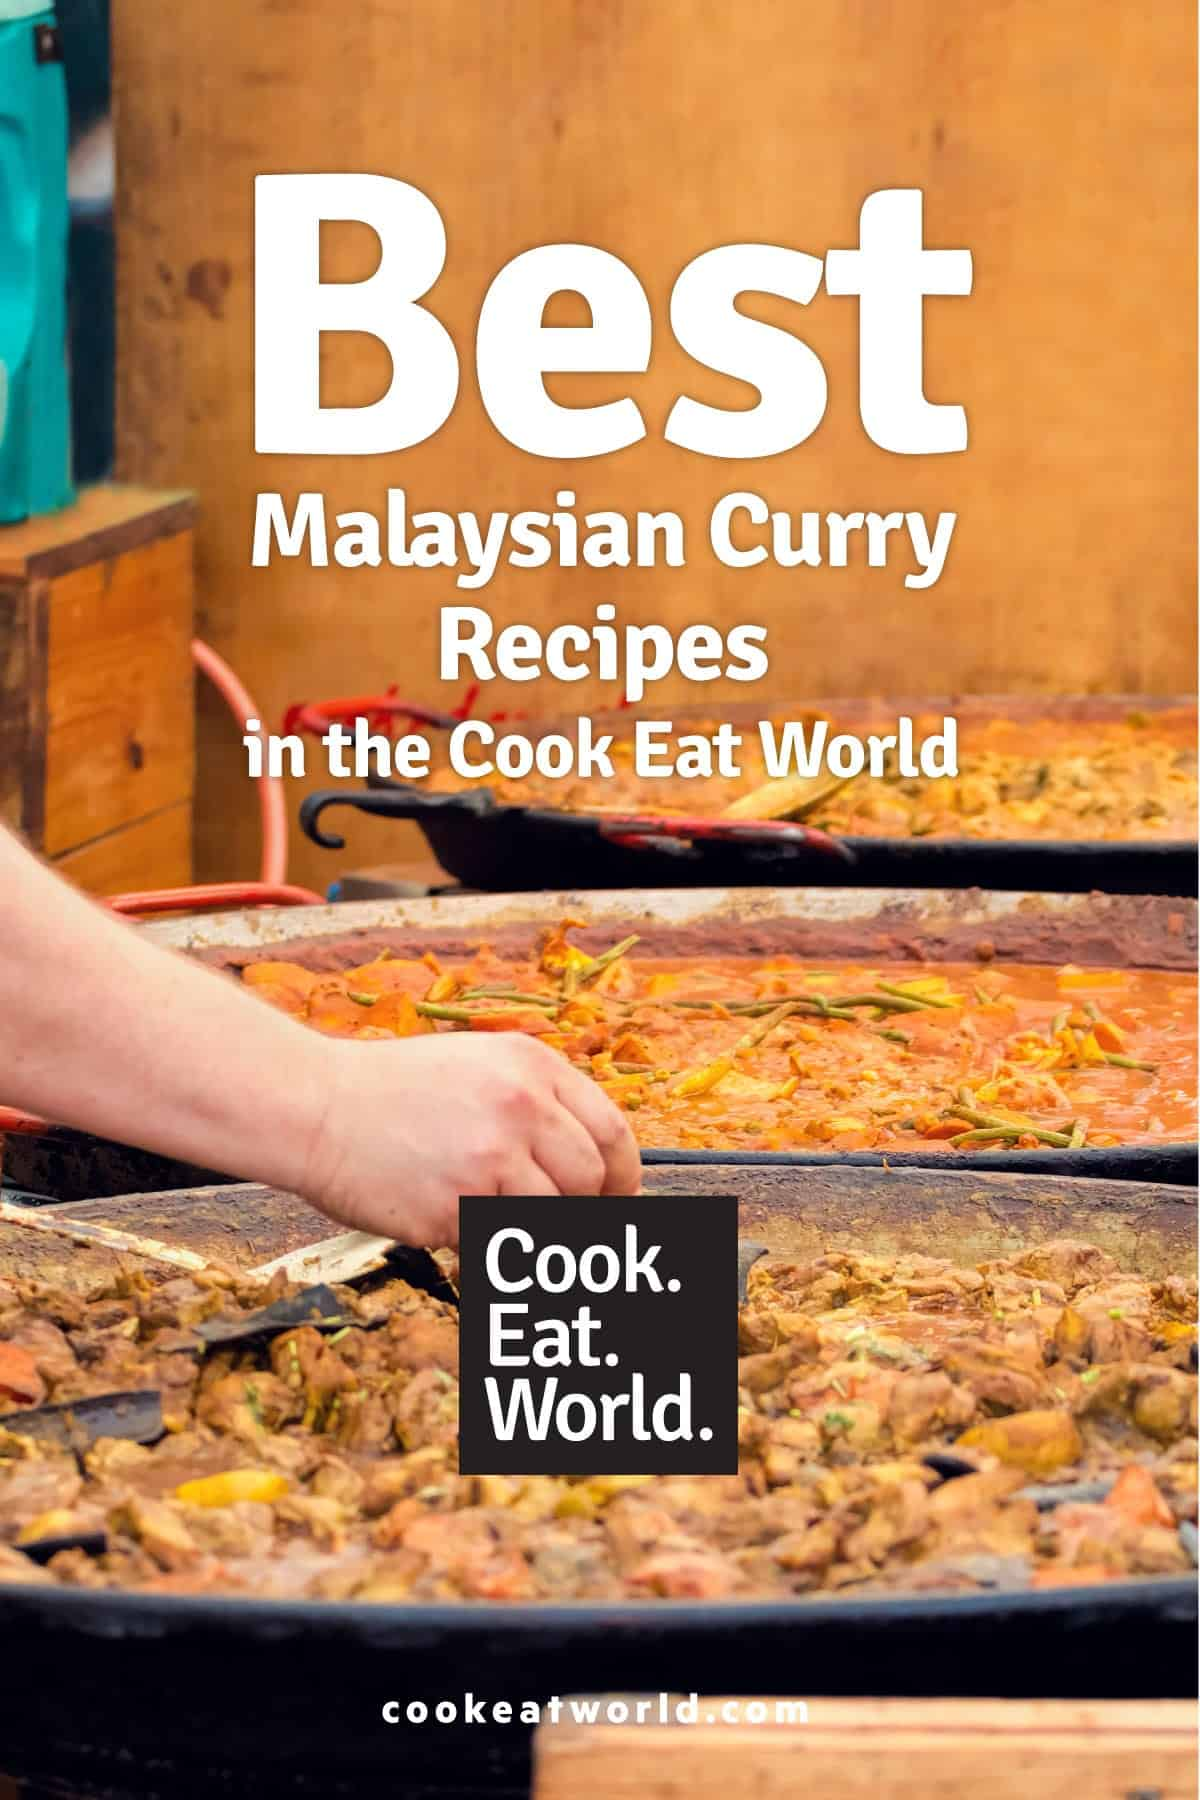 A man picks from a variety of Malaysian street food curries